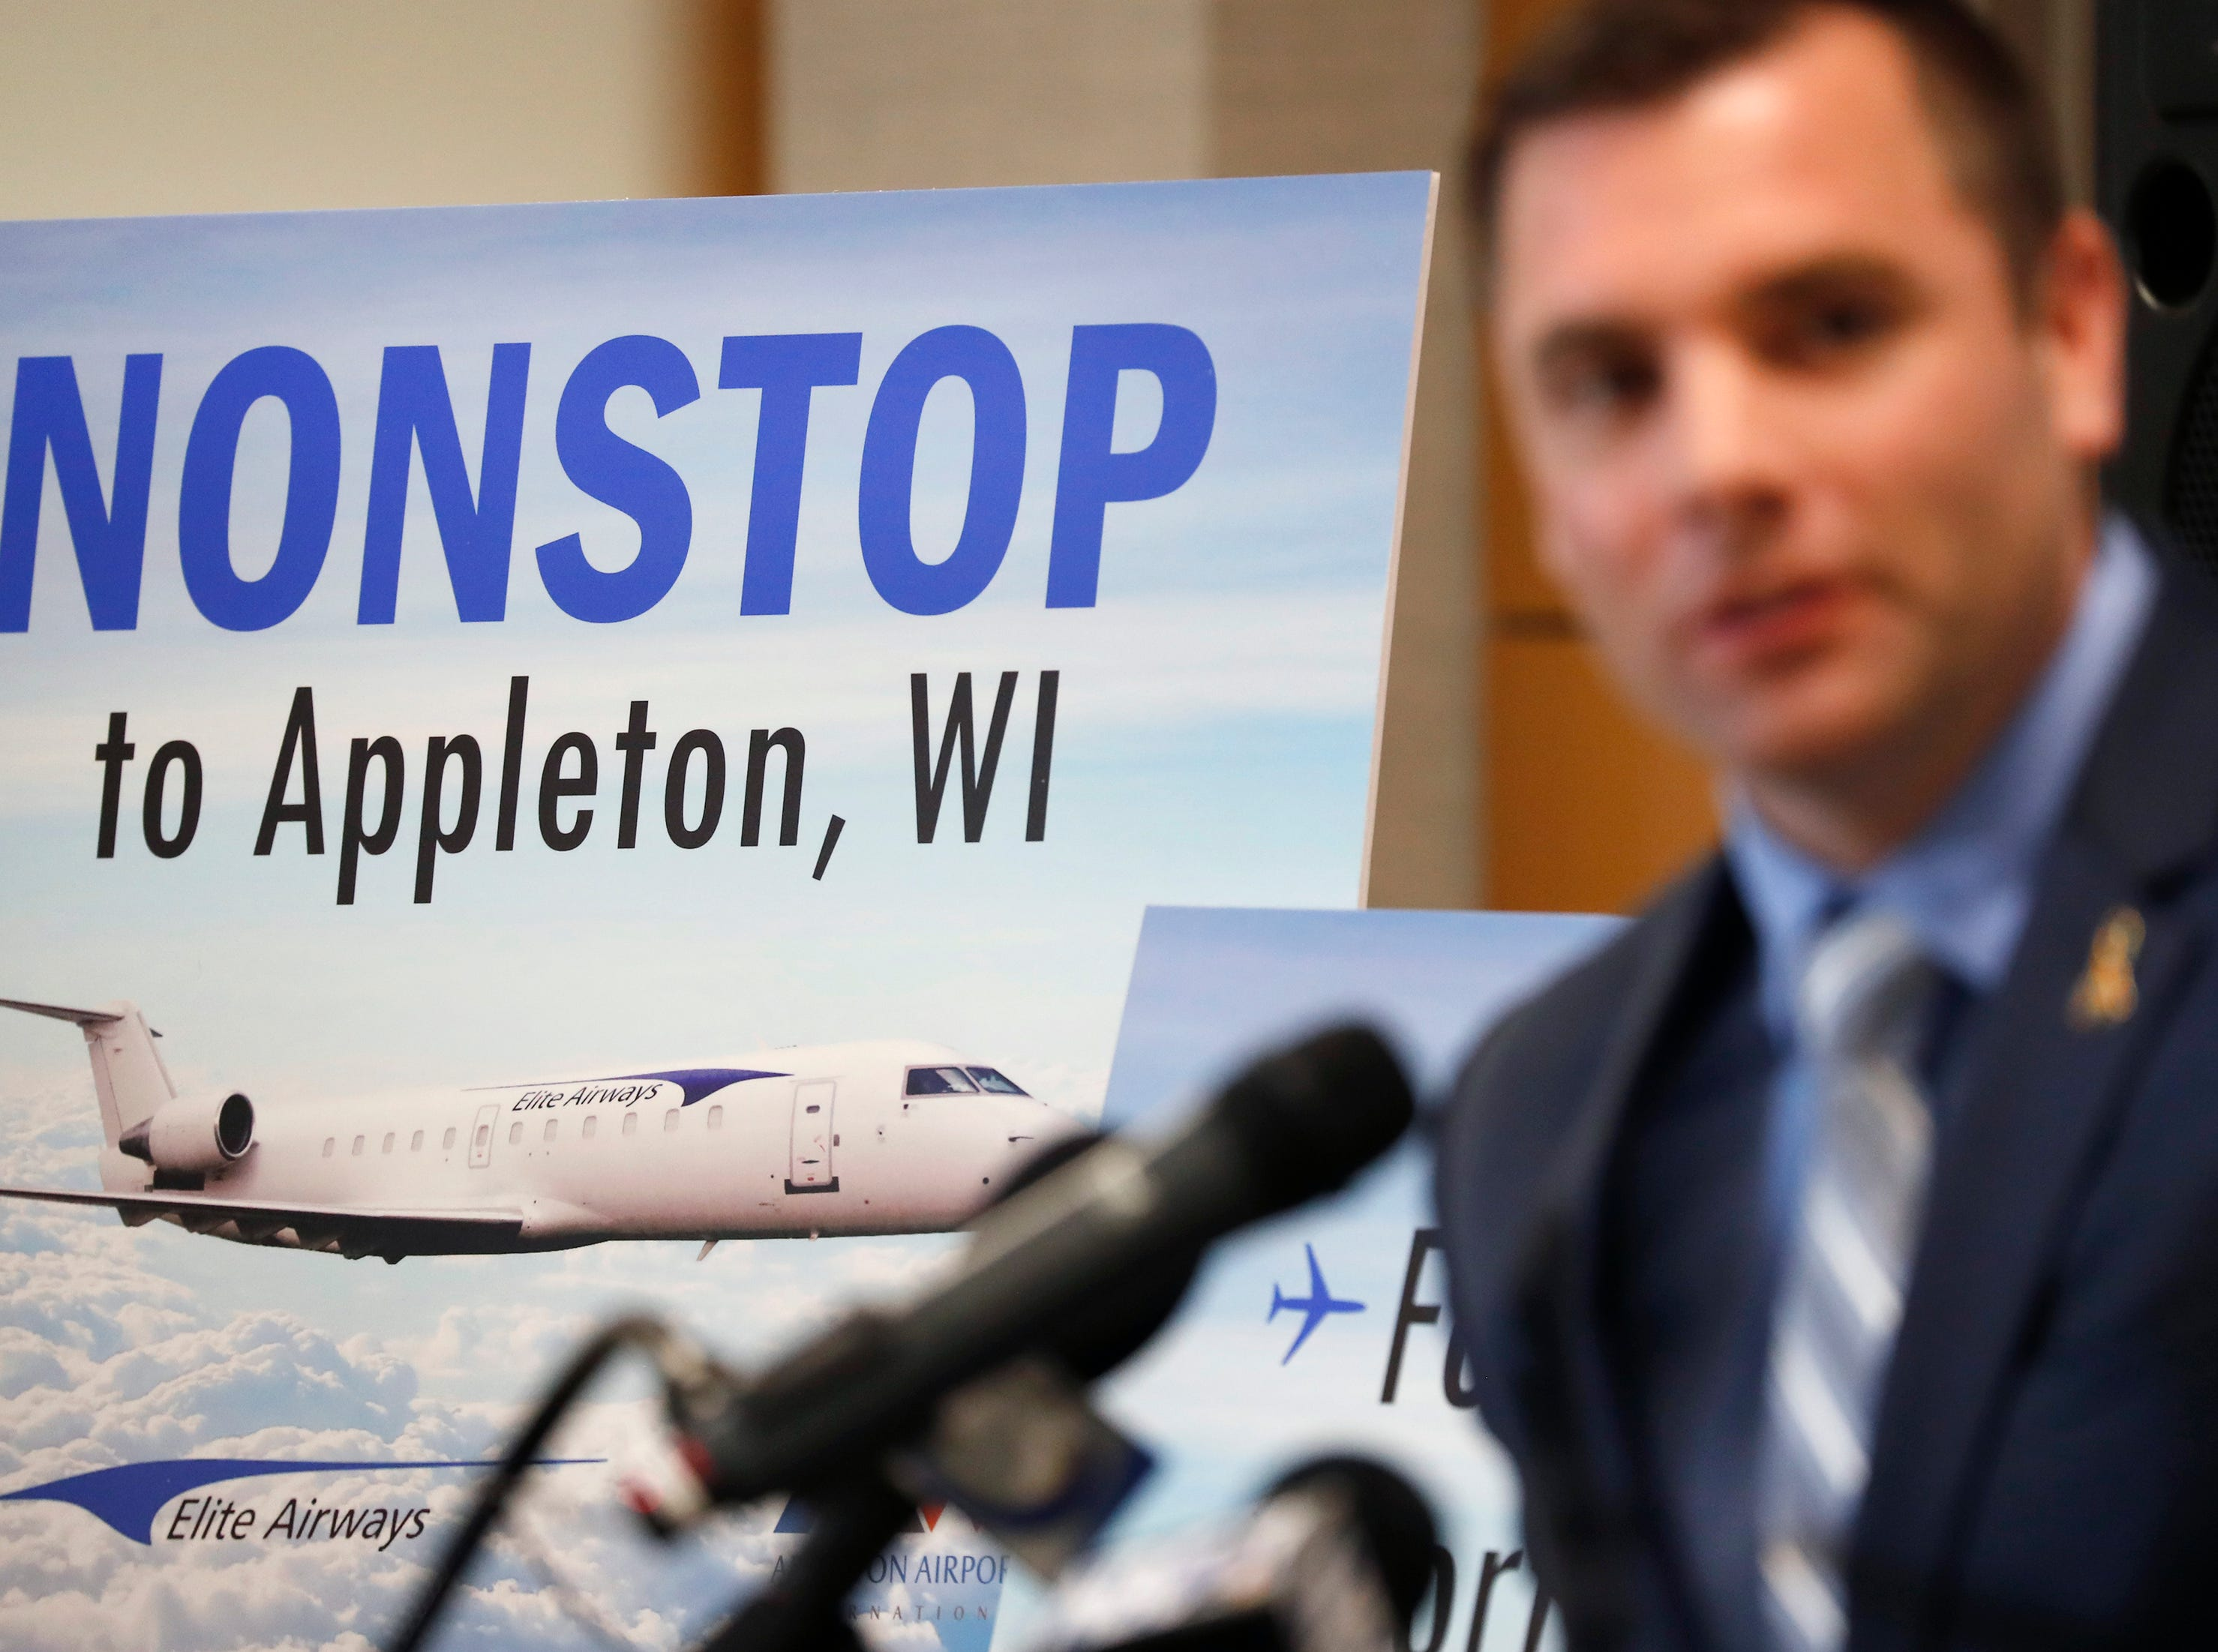 Appleton International Airport director Abe Weber speaks at the announcement of nonstop charter flights from Elite Airways departing from Fort Worth, Texas, Melbourne, Fla., and Portland, Maine during EAA AirVenture Wednesday, April 17, 2019, in Greenville, Wis. This will be EAA AirVenture's 50th anniversary.Danny Damiani/USA TODAY NETWORK-Wisconsin